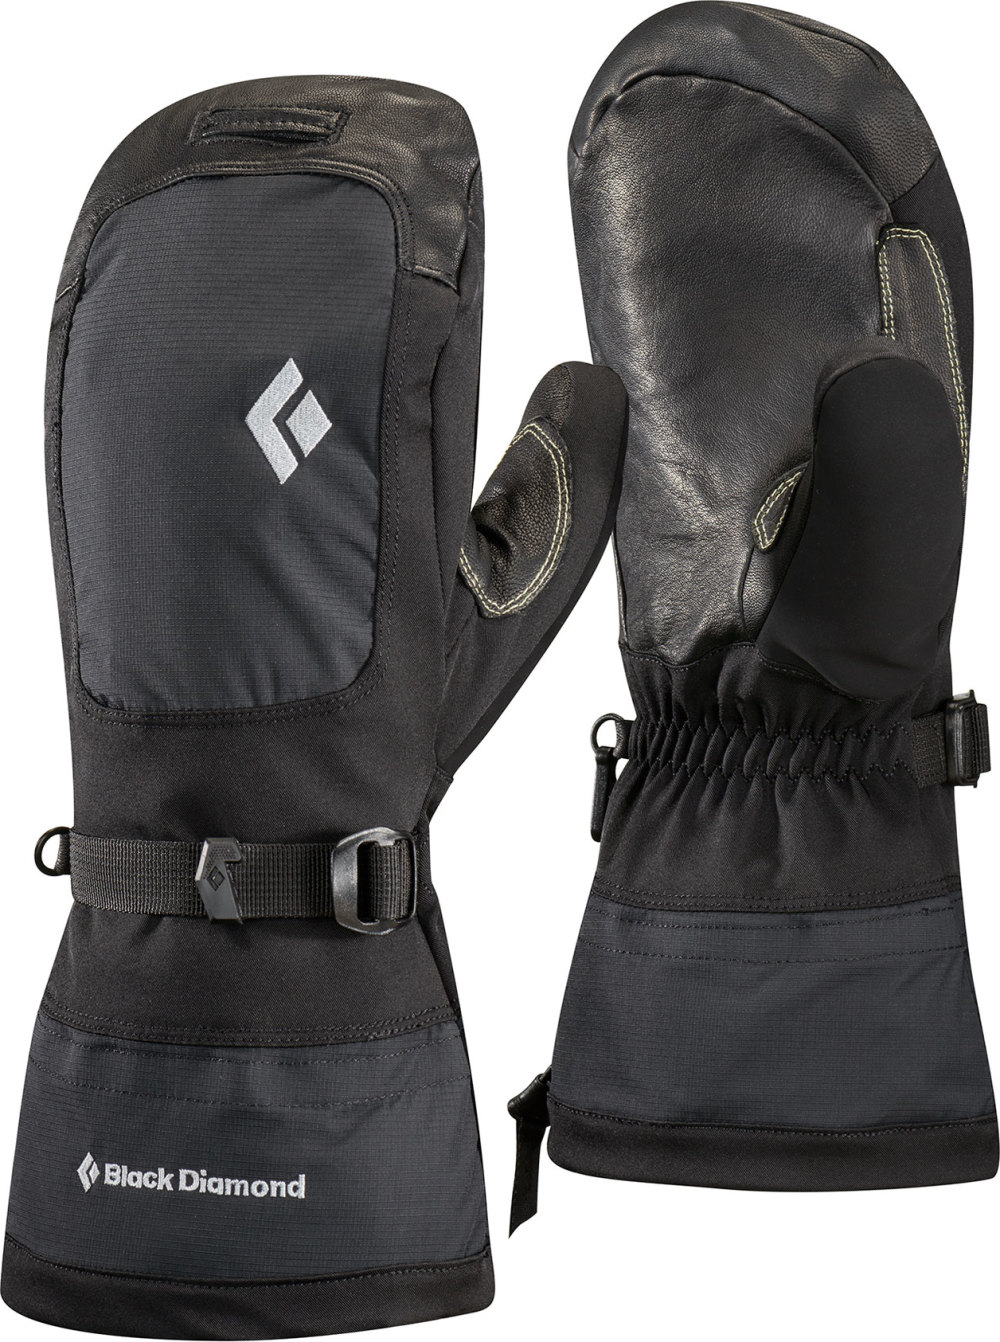 photo: Black Diamond Mercury Mitt insulated glove/mitten